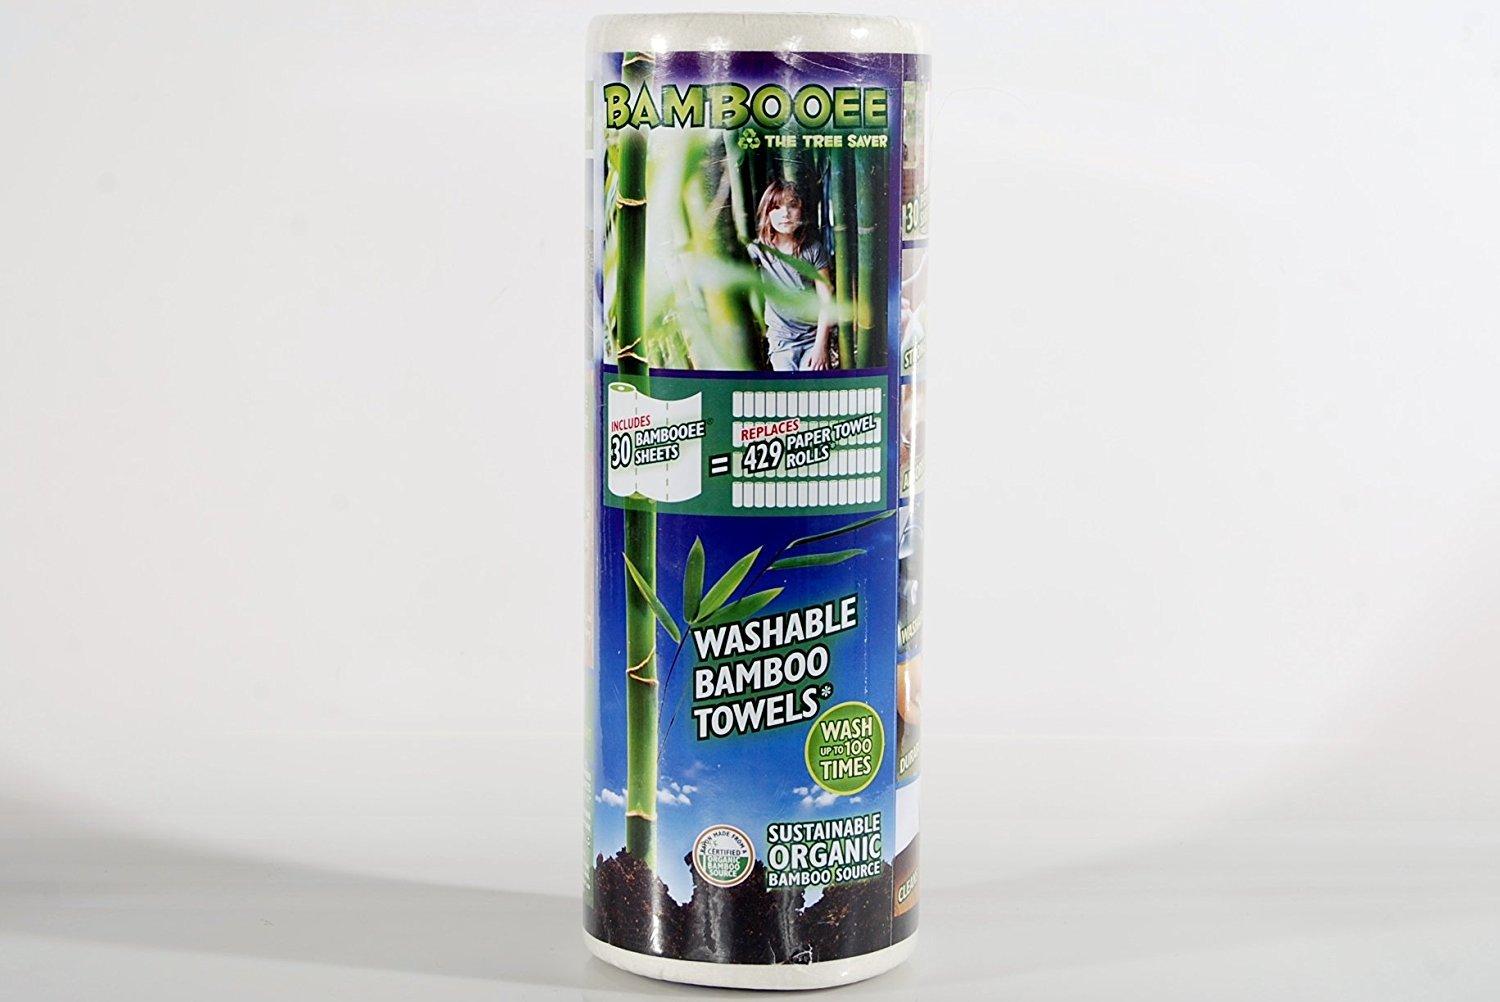 Bambooee Washable Rayon from Bamboo Cloth Wipes As Seen on SharkTank Bamboo Paper Towel Replacement Jumbo 30 Sheet Roll